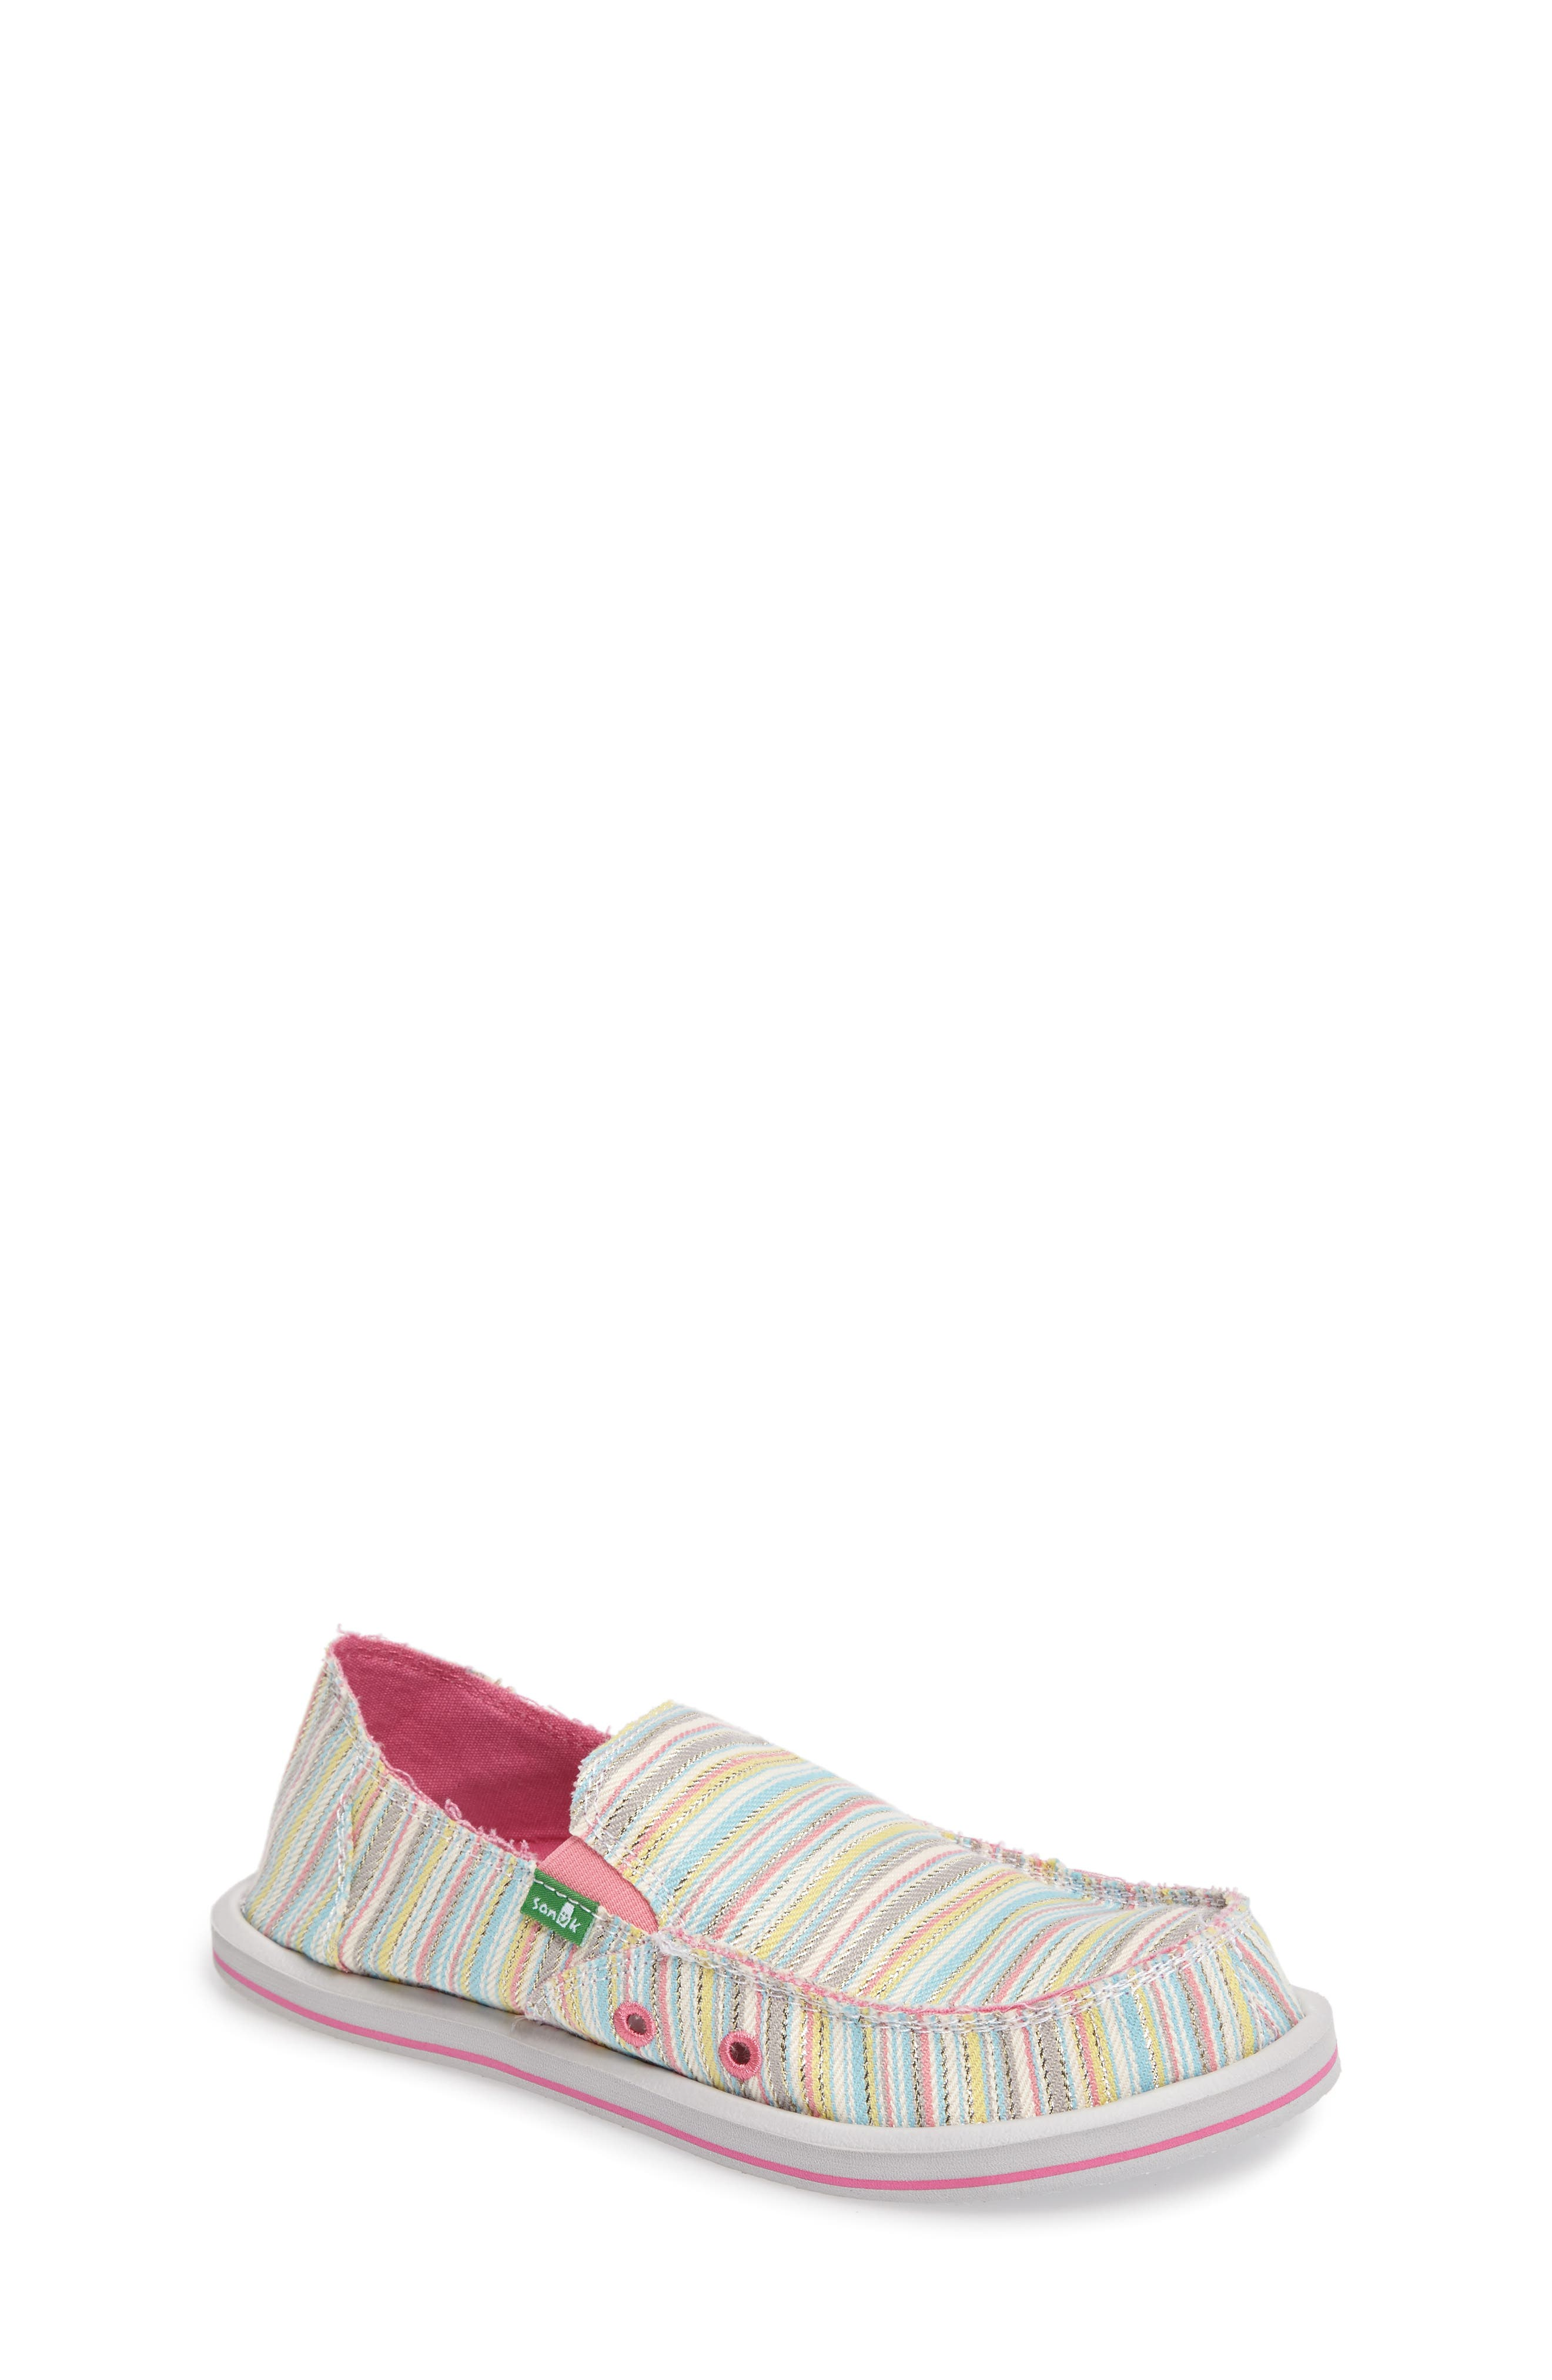 'Donna - Poncho' Vegan Slip-On,                         Main,                         color, Aqua/ Pink Pinstripe